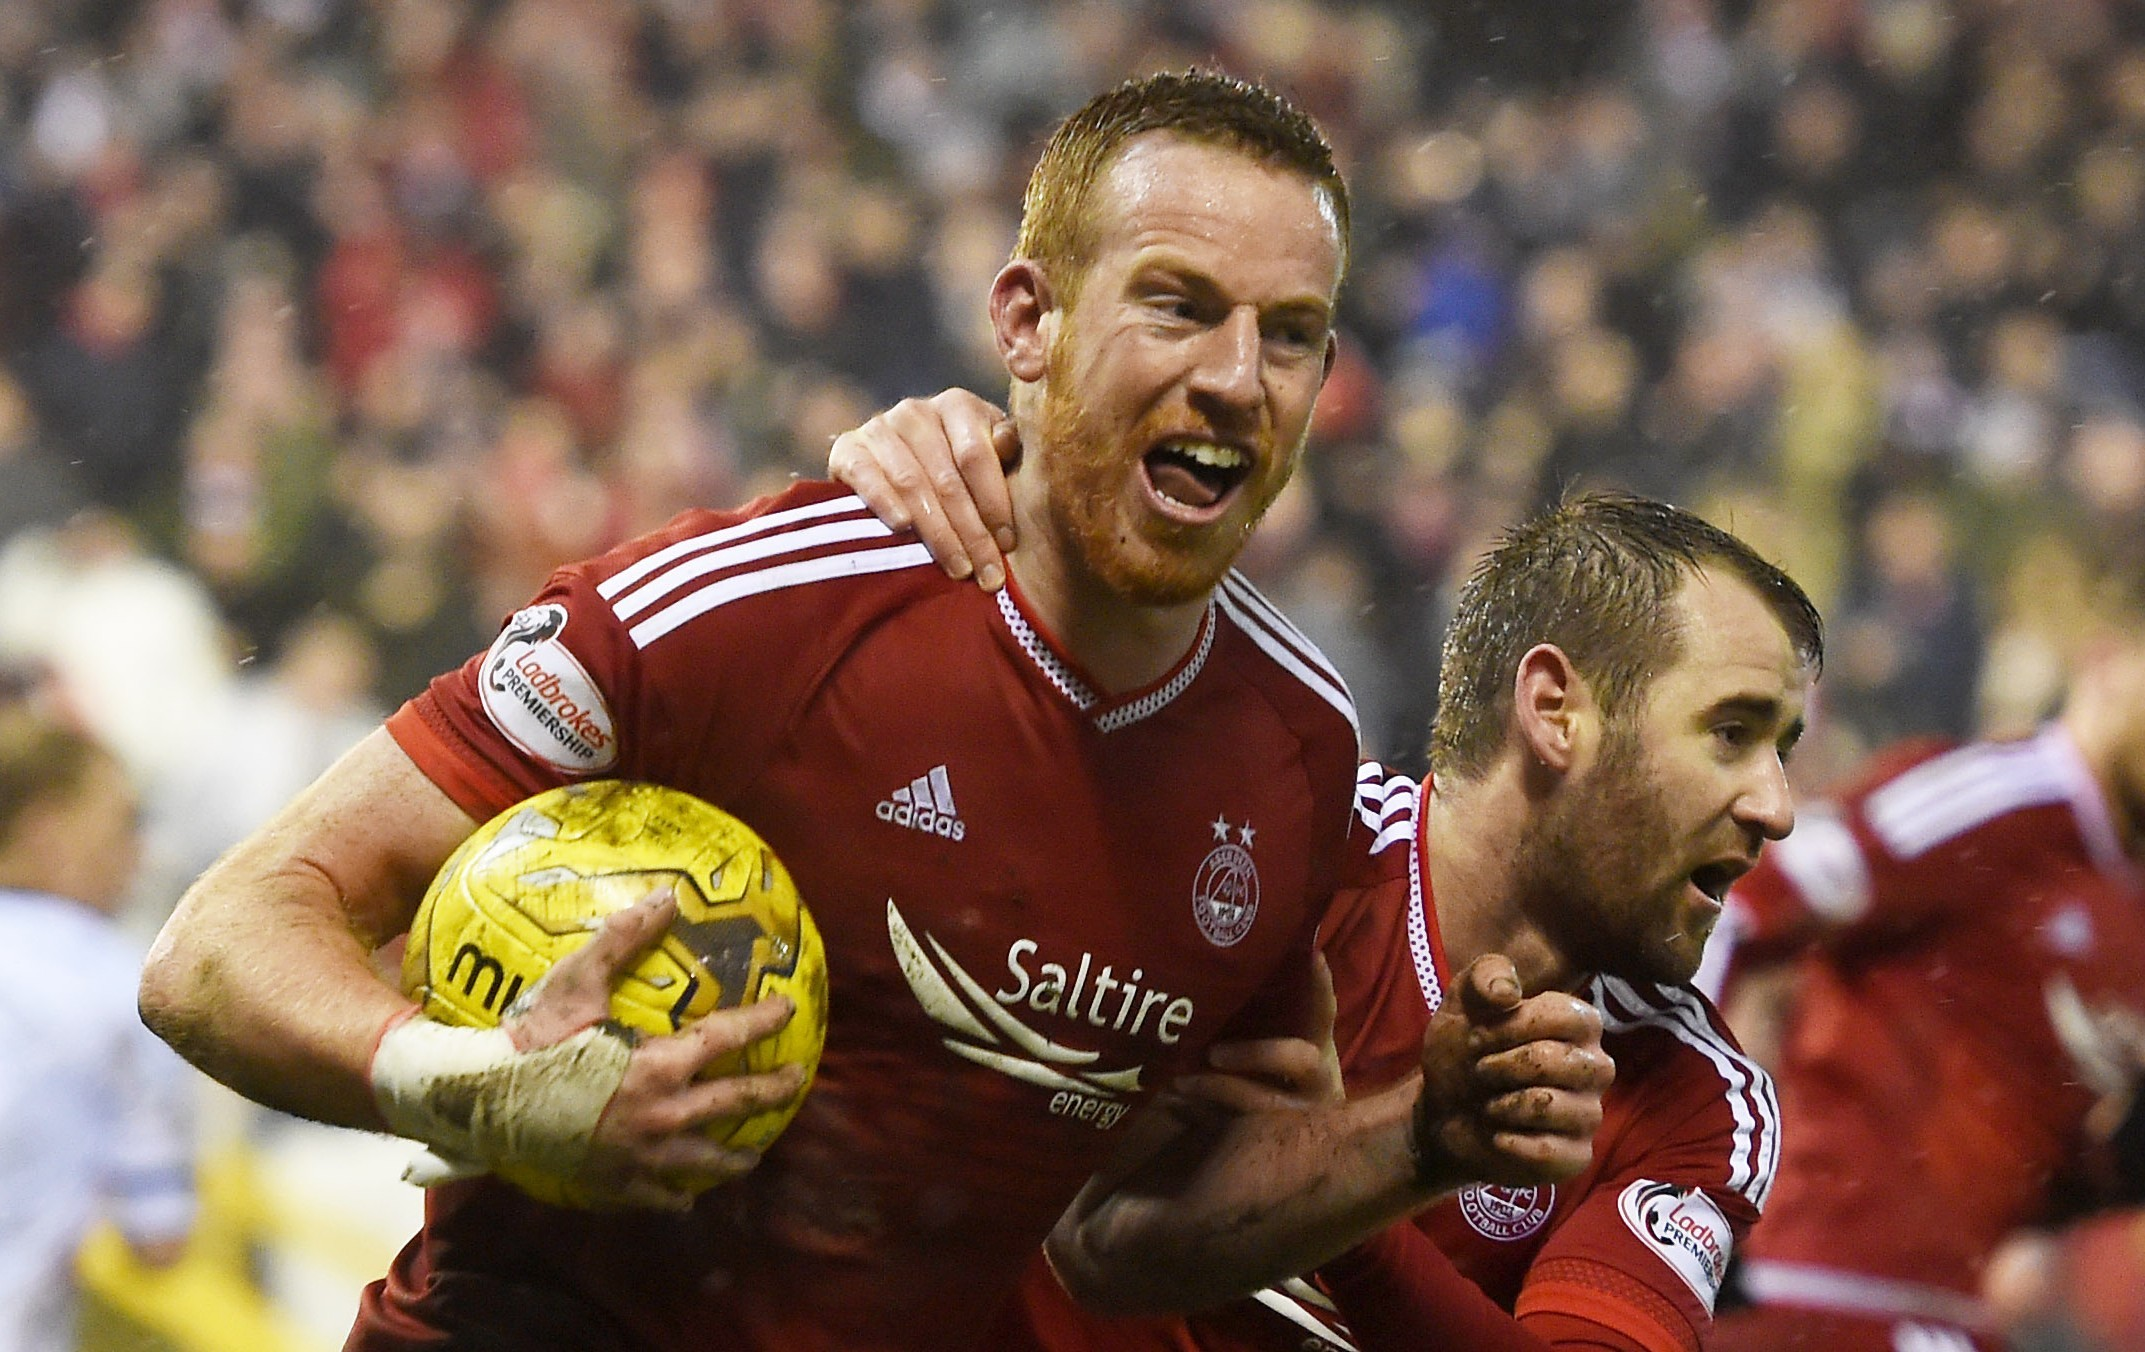 Aberdeen's Adam Rooney celebrates his goal